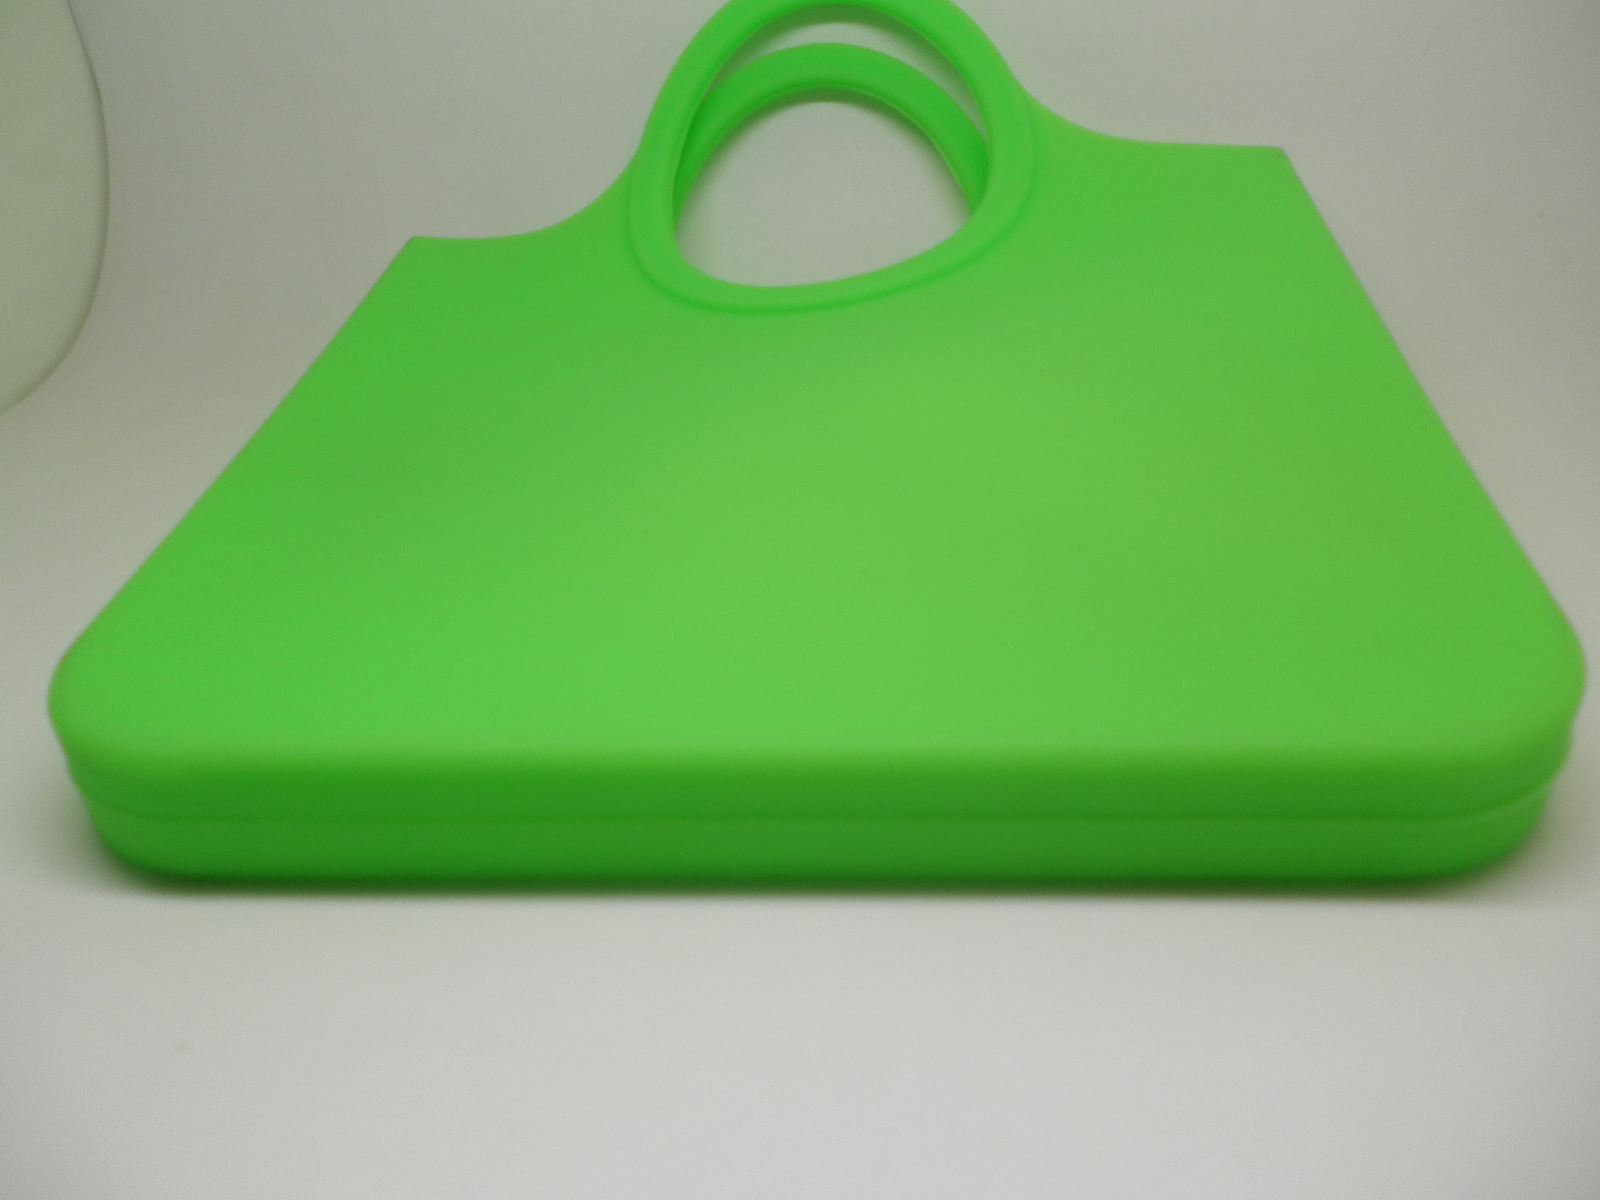 http://www.refinehksilicone.cn/data/images/product/20180417100526_811.JPG